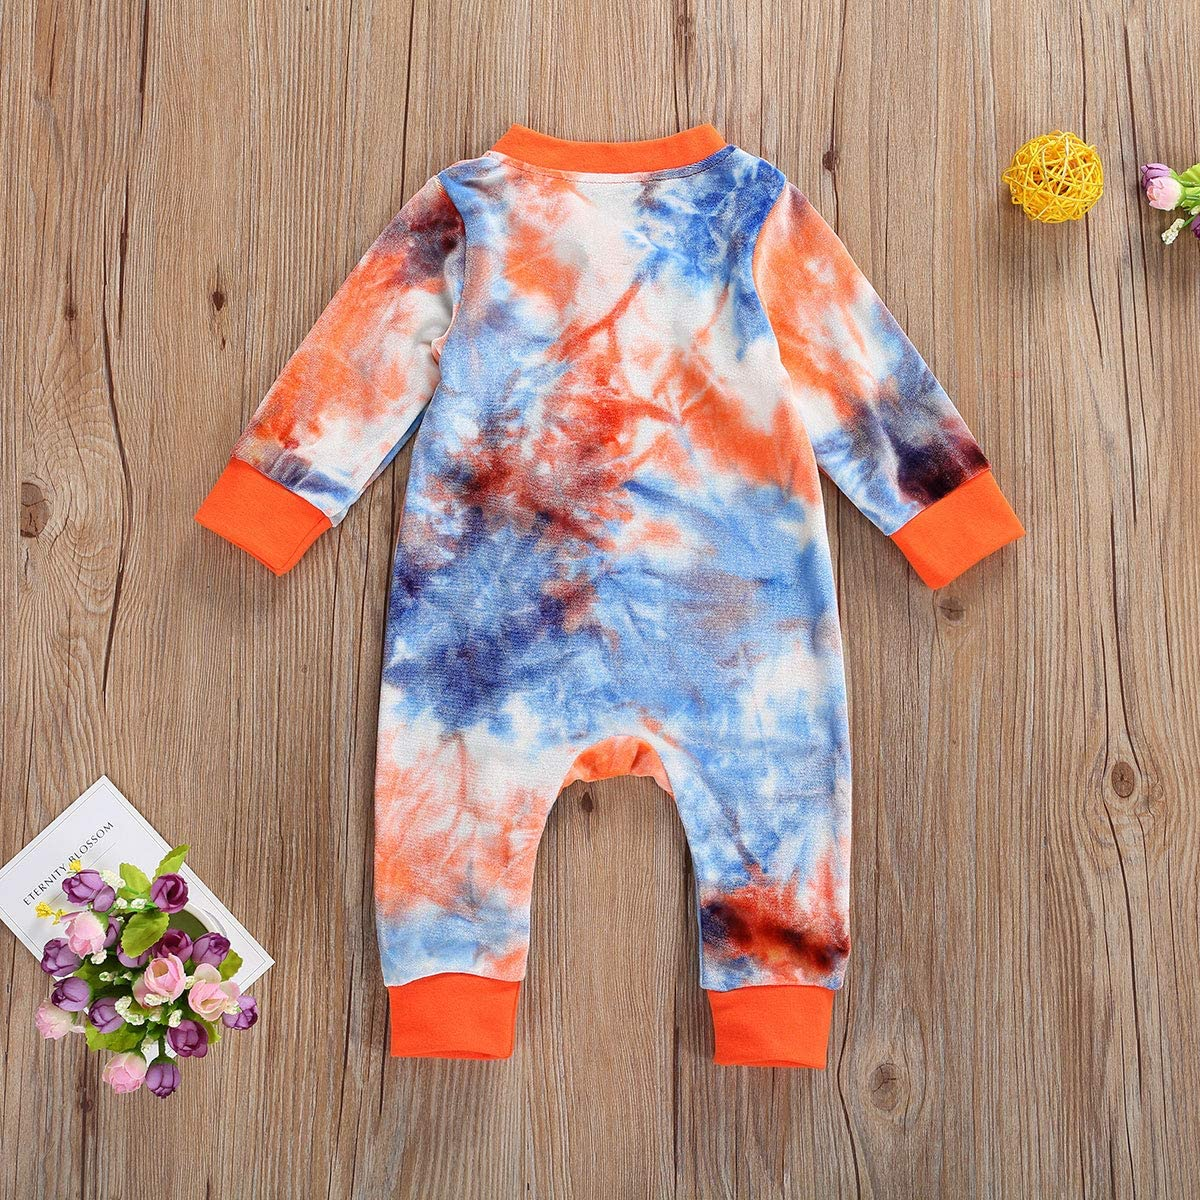 Aoiureznia Newborn Baby Girl Boy Plain Zipper Romper Long Sleeve One-Piece Ribbed Jumpsuit Pajama Fall Winter Clothes Outfits